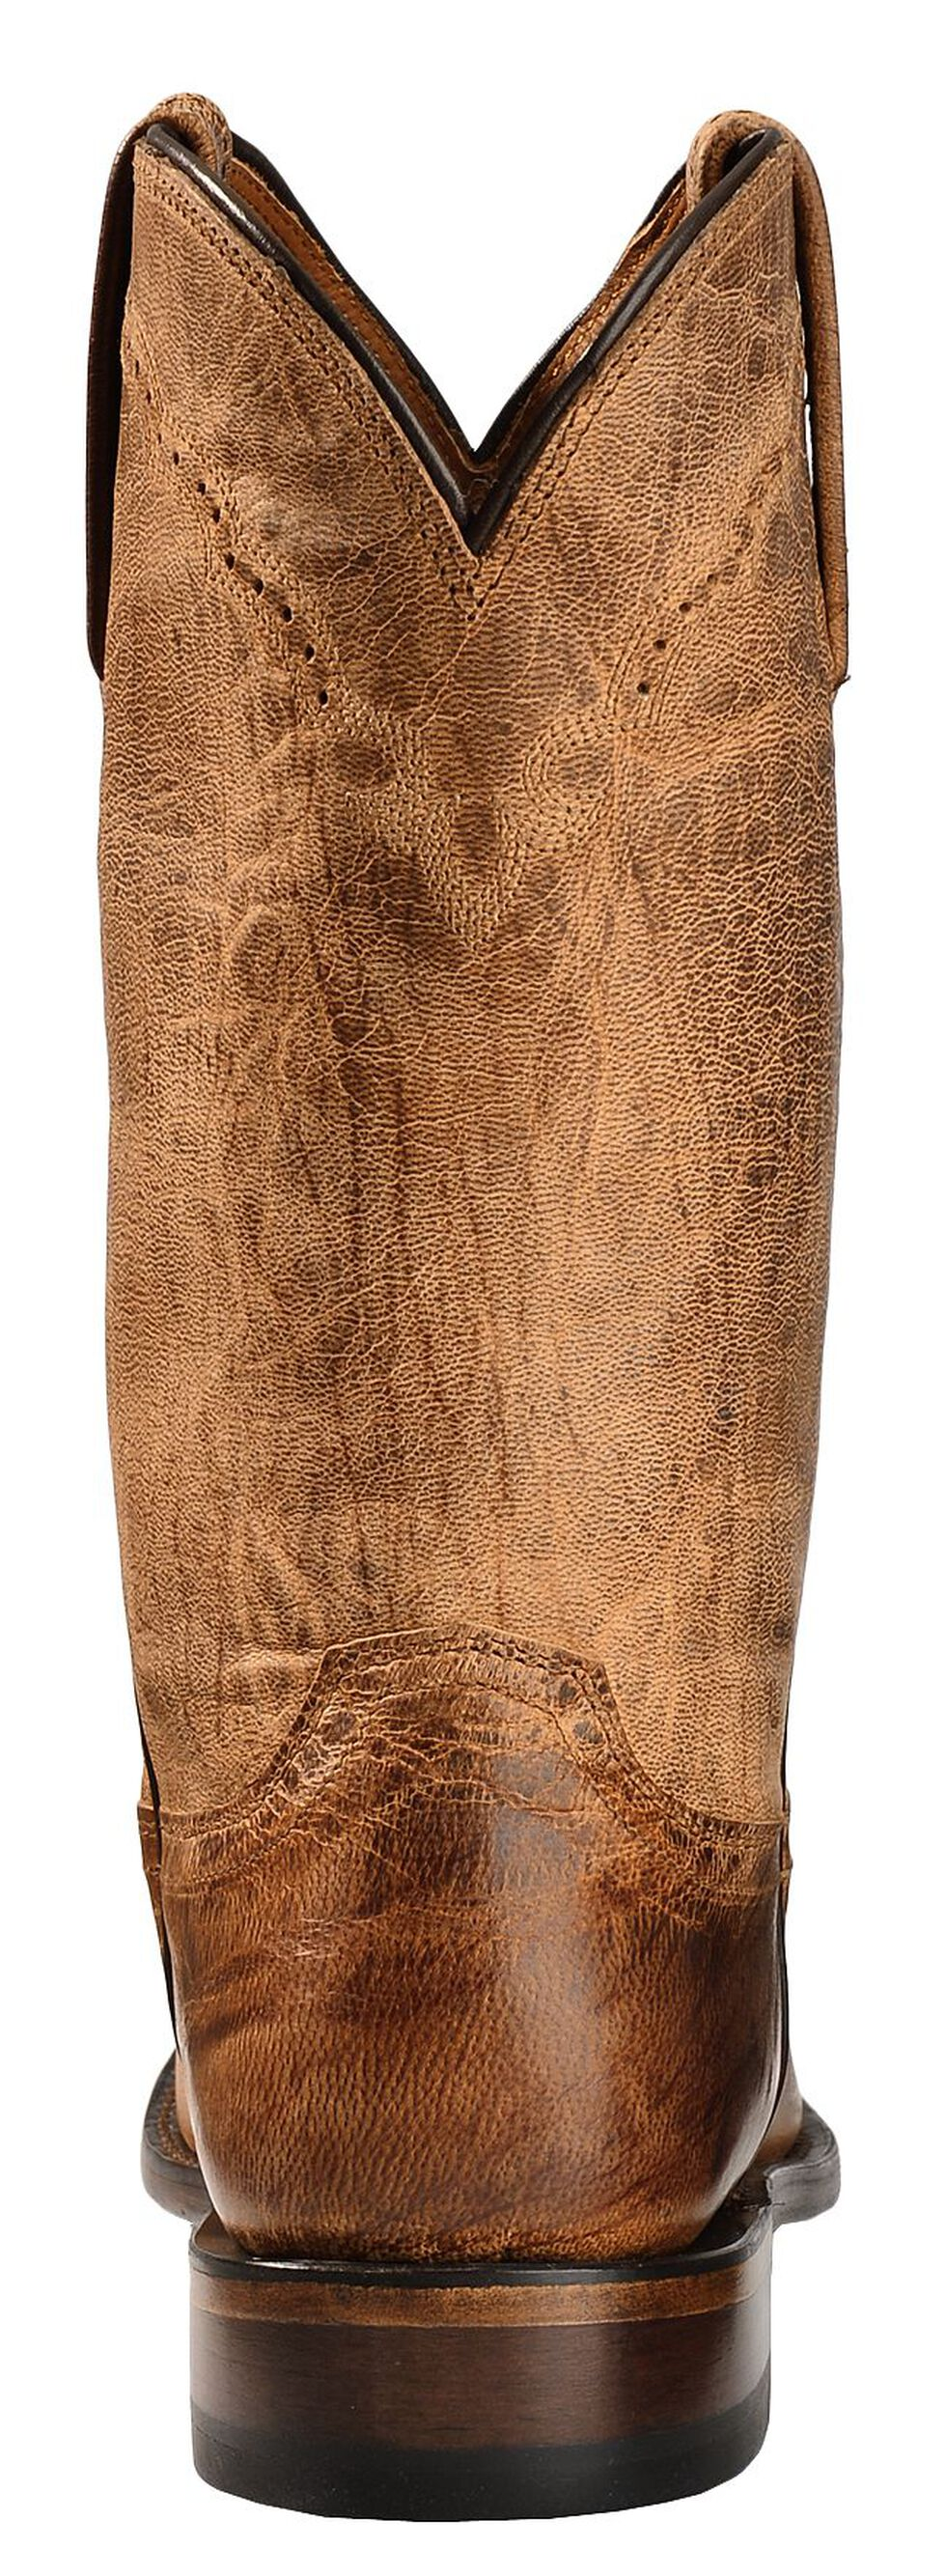 Lucchese Handmade 1883 Mad Dog Goatskin Roper Cowboy Boots - Round Toe, Tan, hi-res